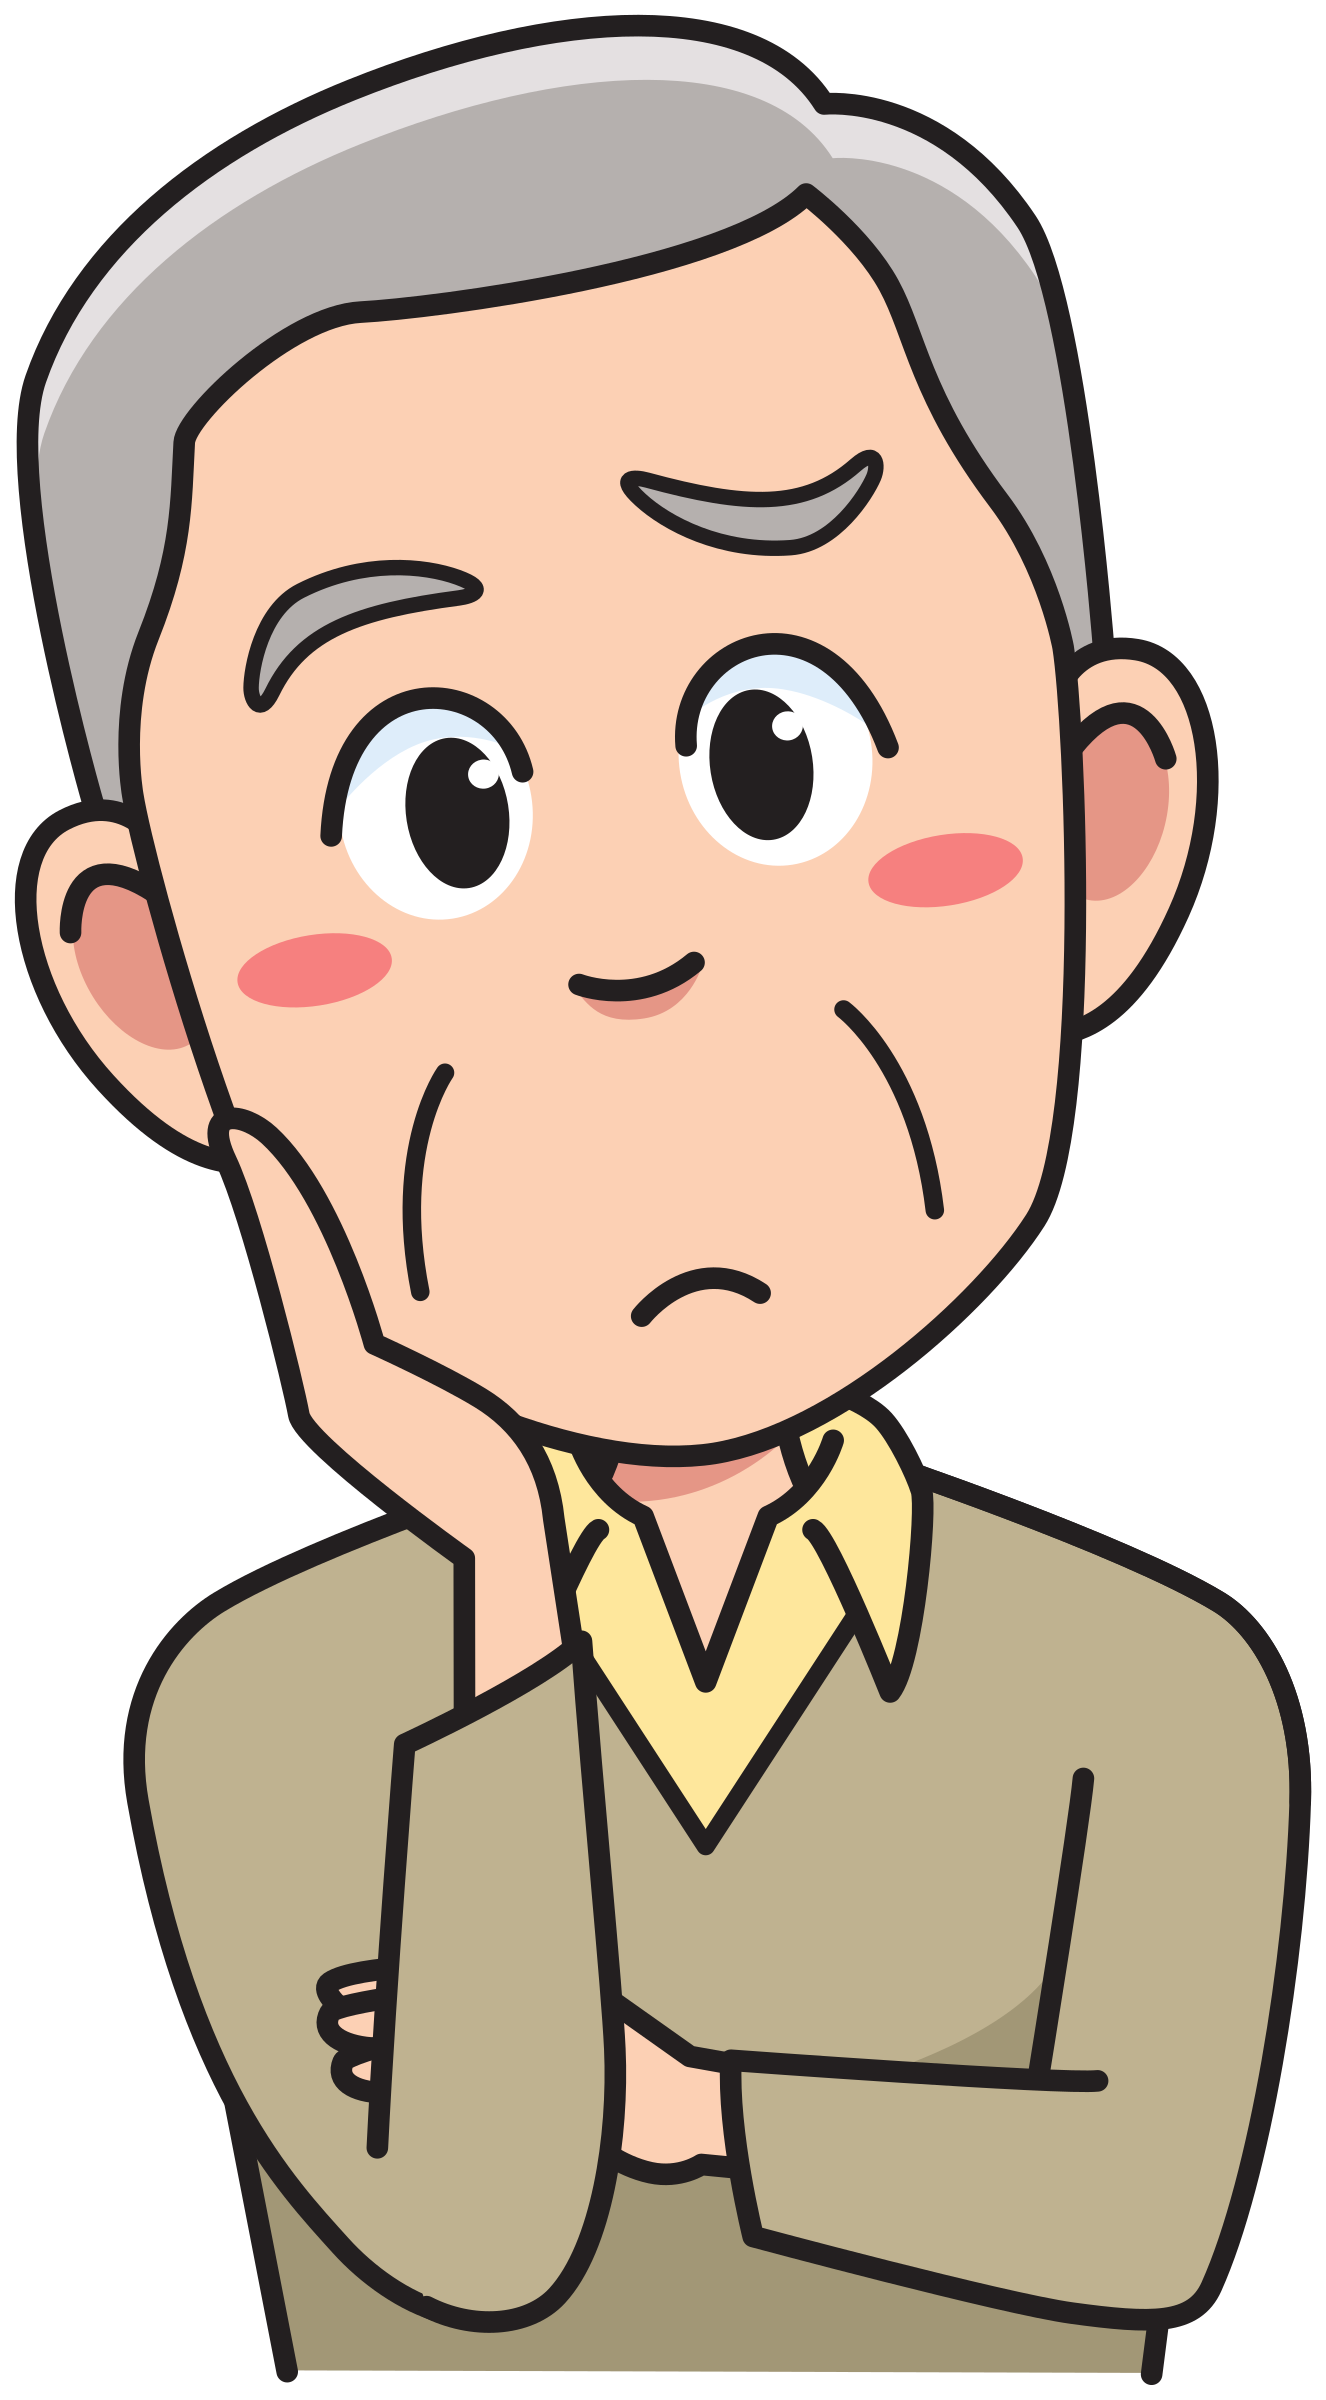 clipart senior man thinking rh openclipart org thinking stick man clipart thinking man clipart